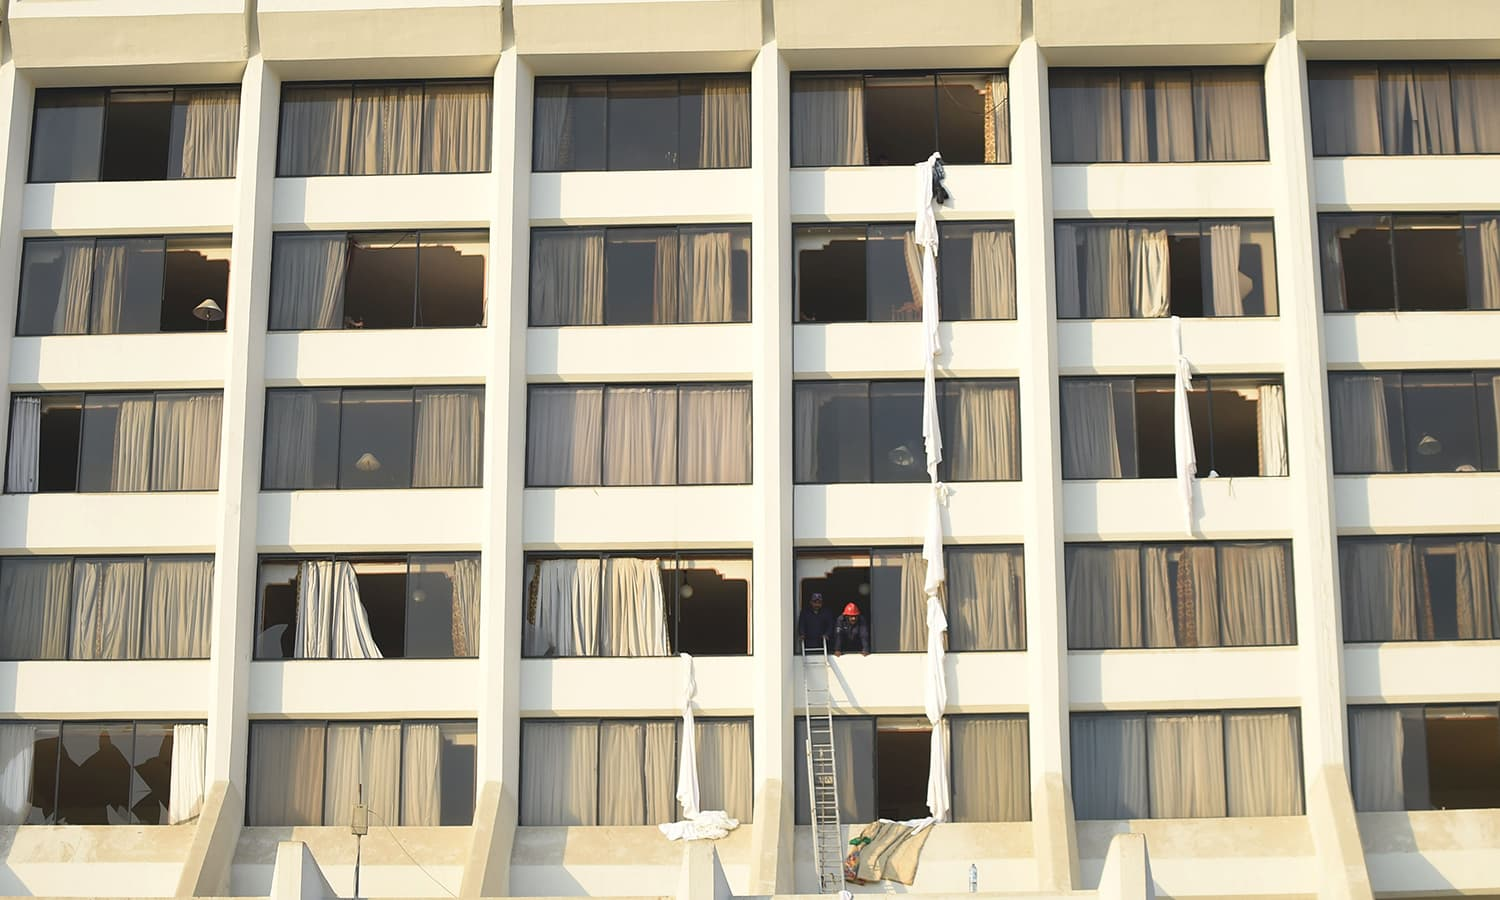 Firefighters look from a room of Regent Plaza after the fire. — AFP